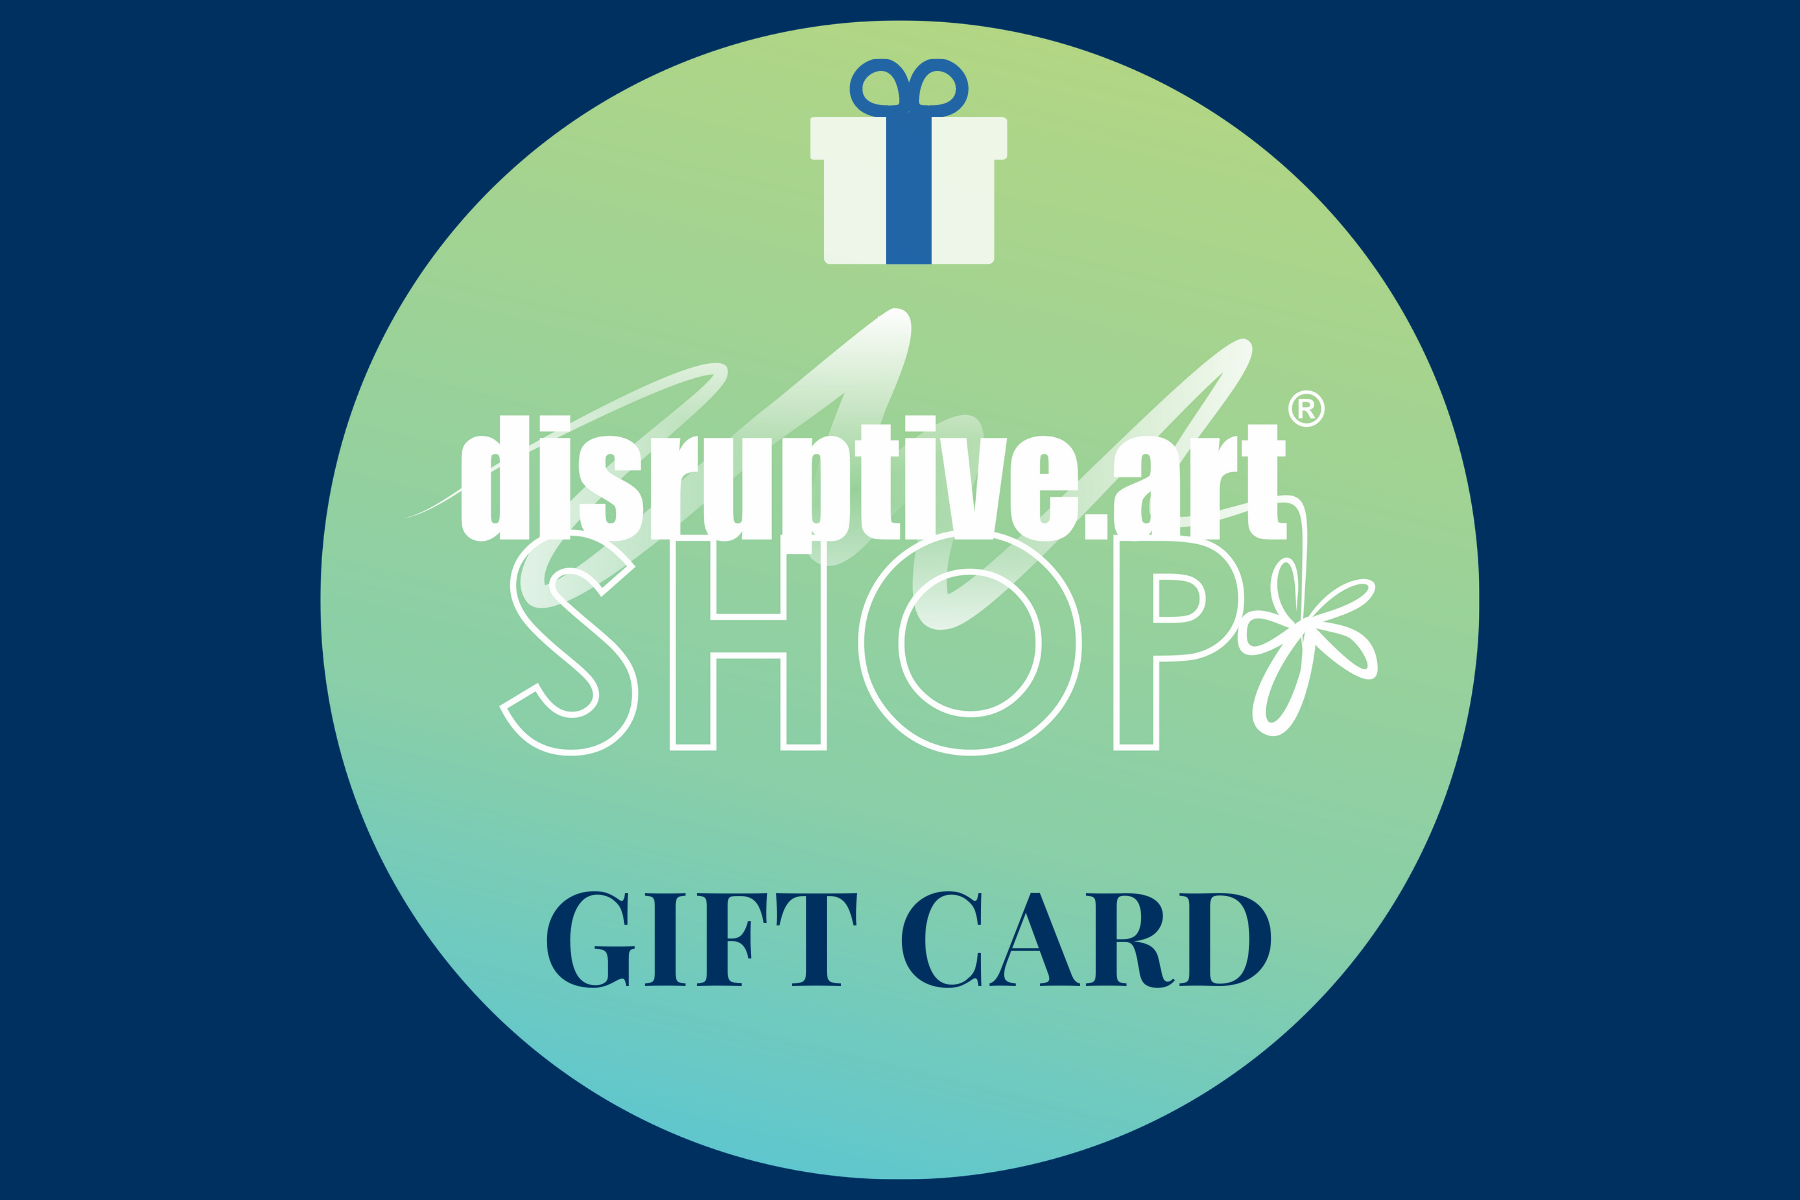 GIFT CARD - Disruptive.Art Online Store